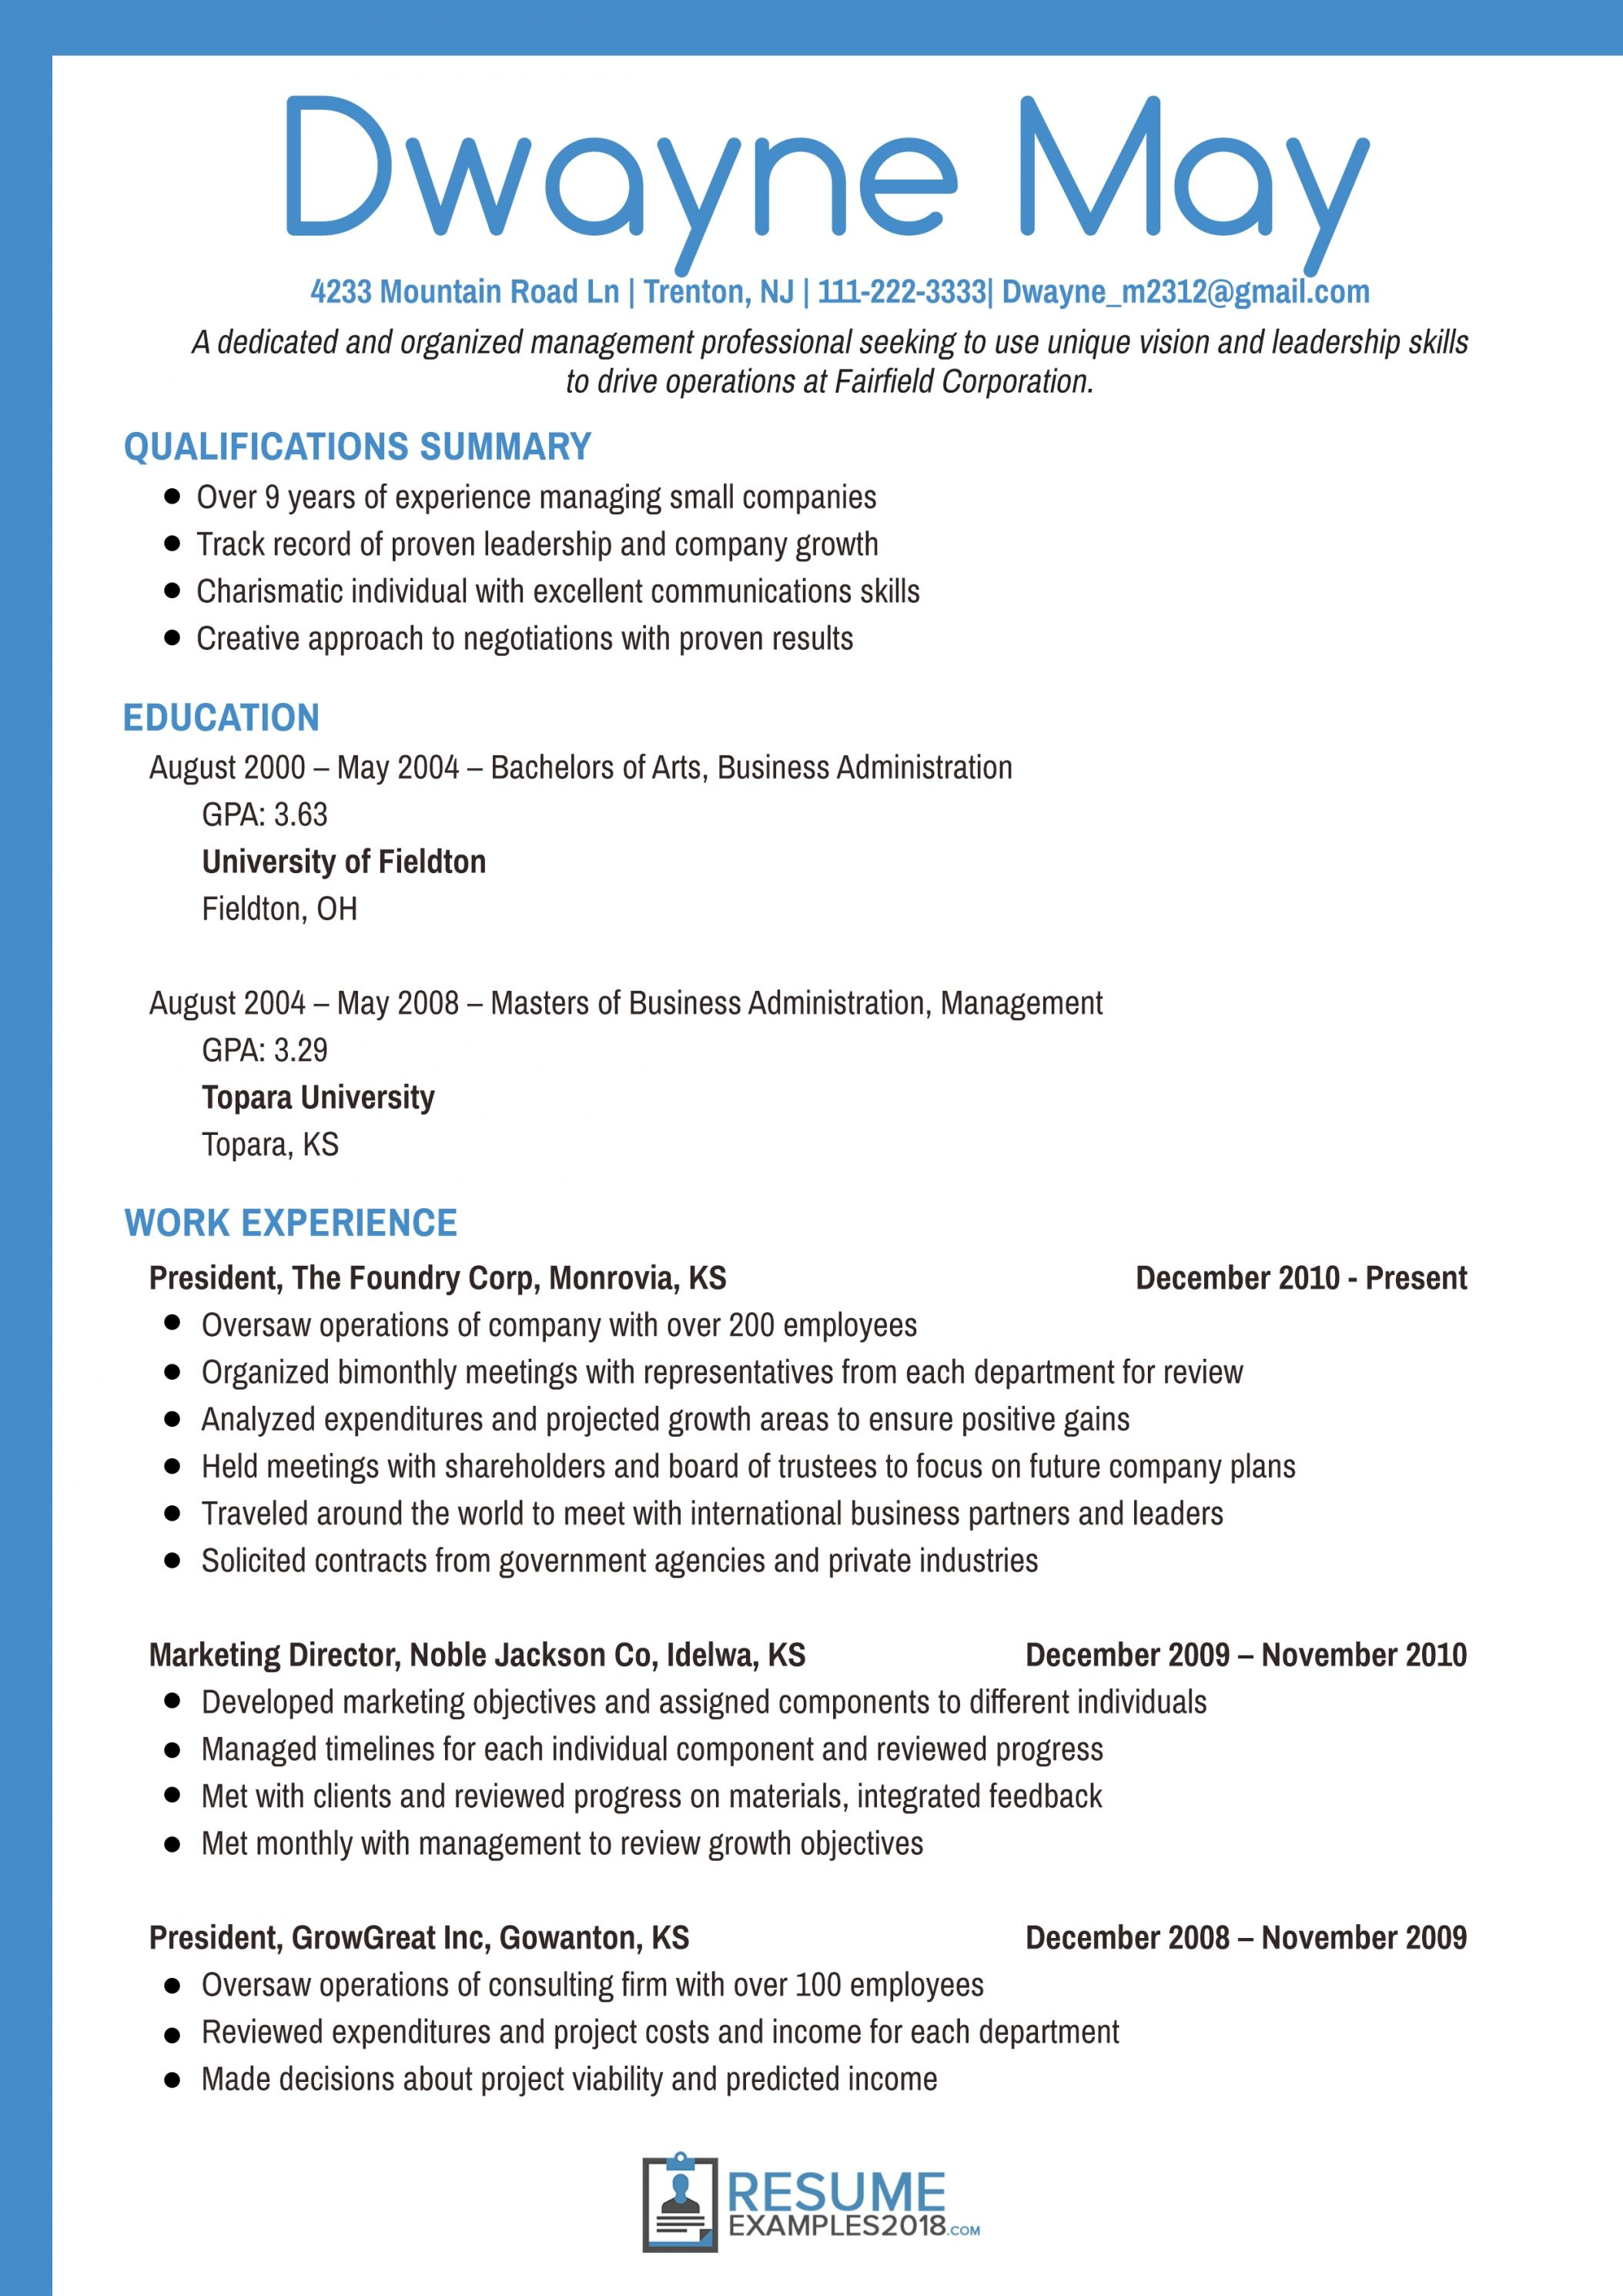 2018 Resume Examples Pinterest Resume Examples Resume And